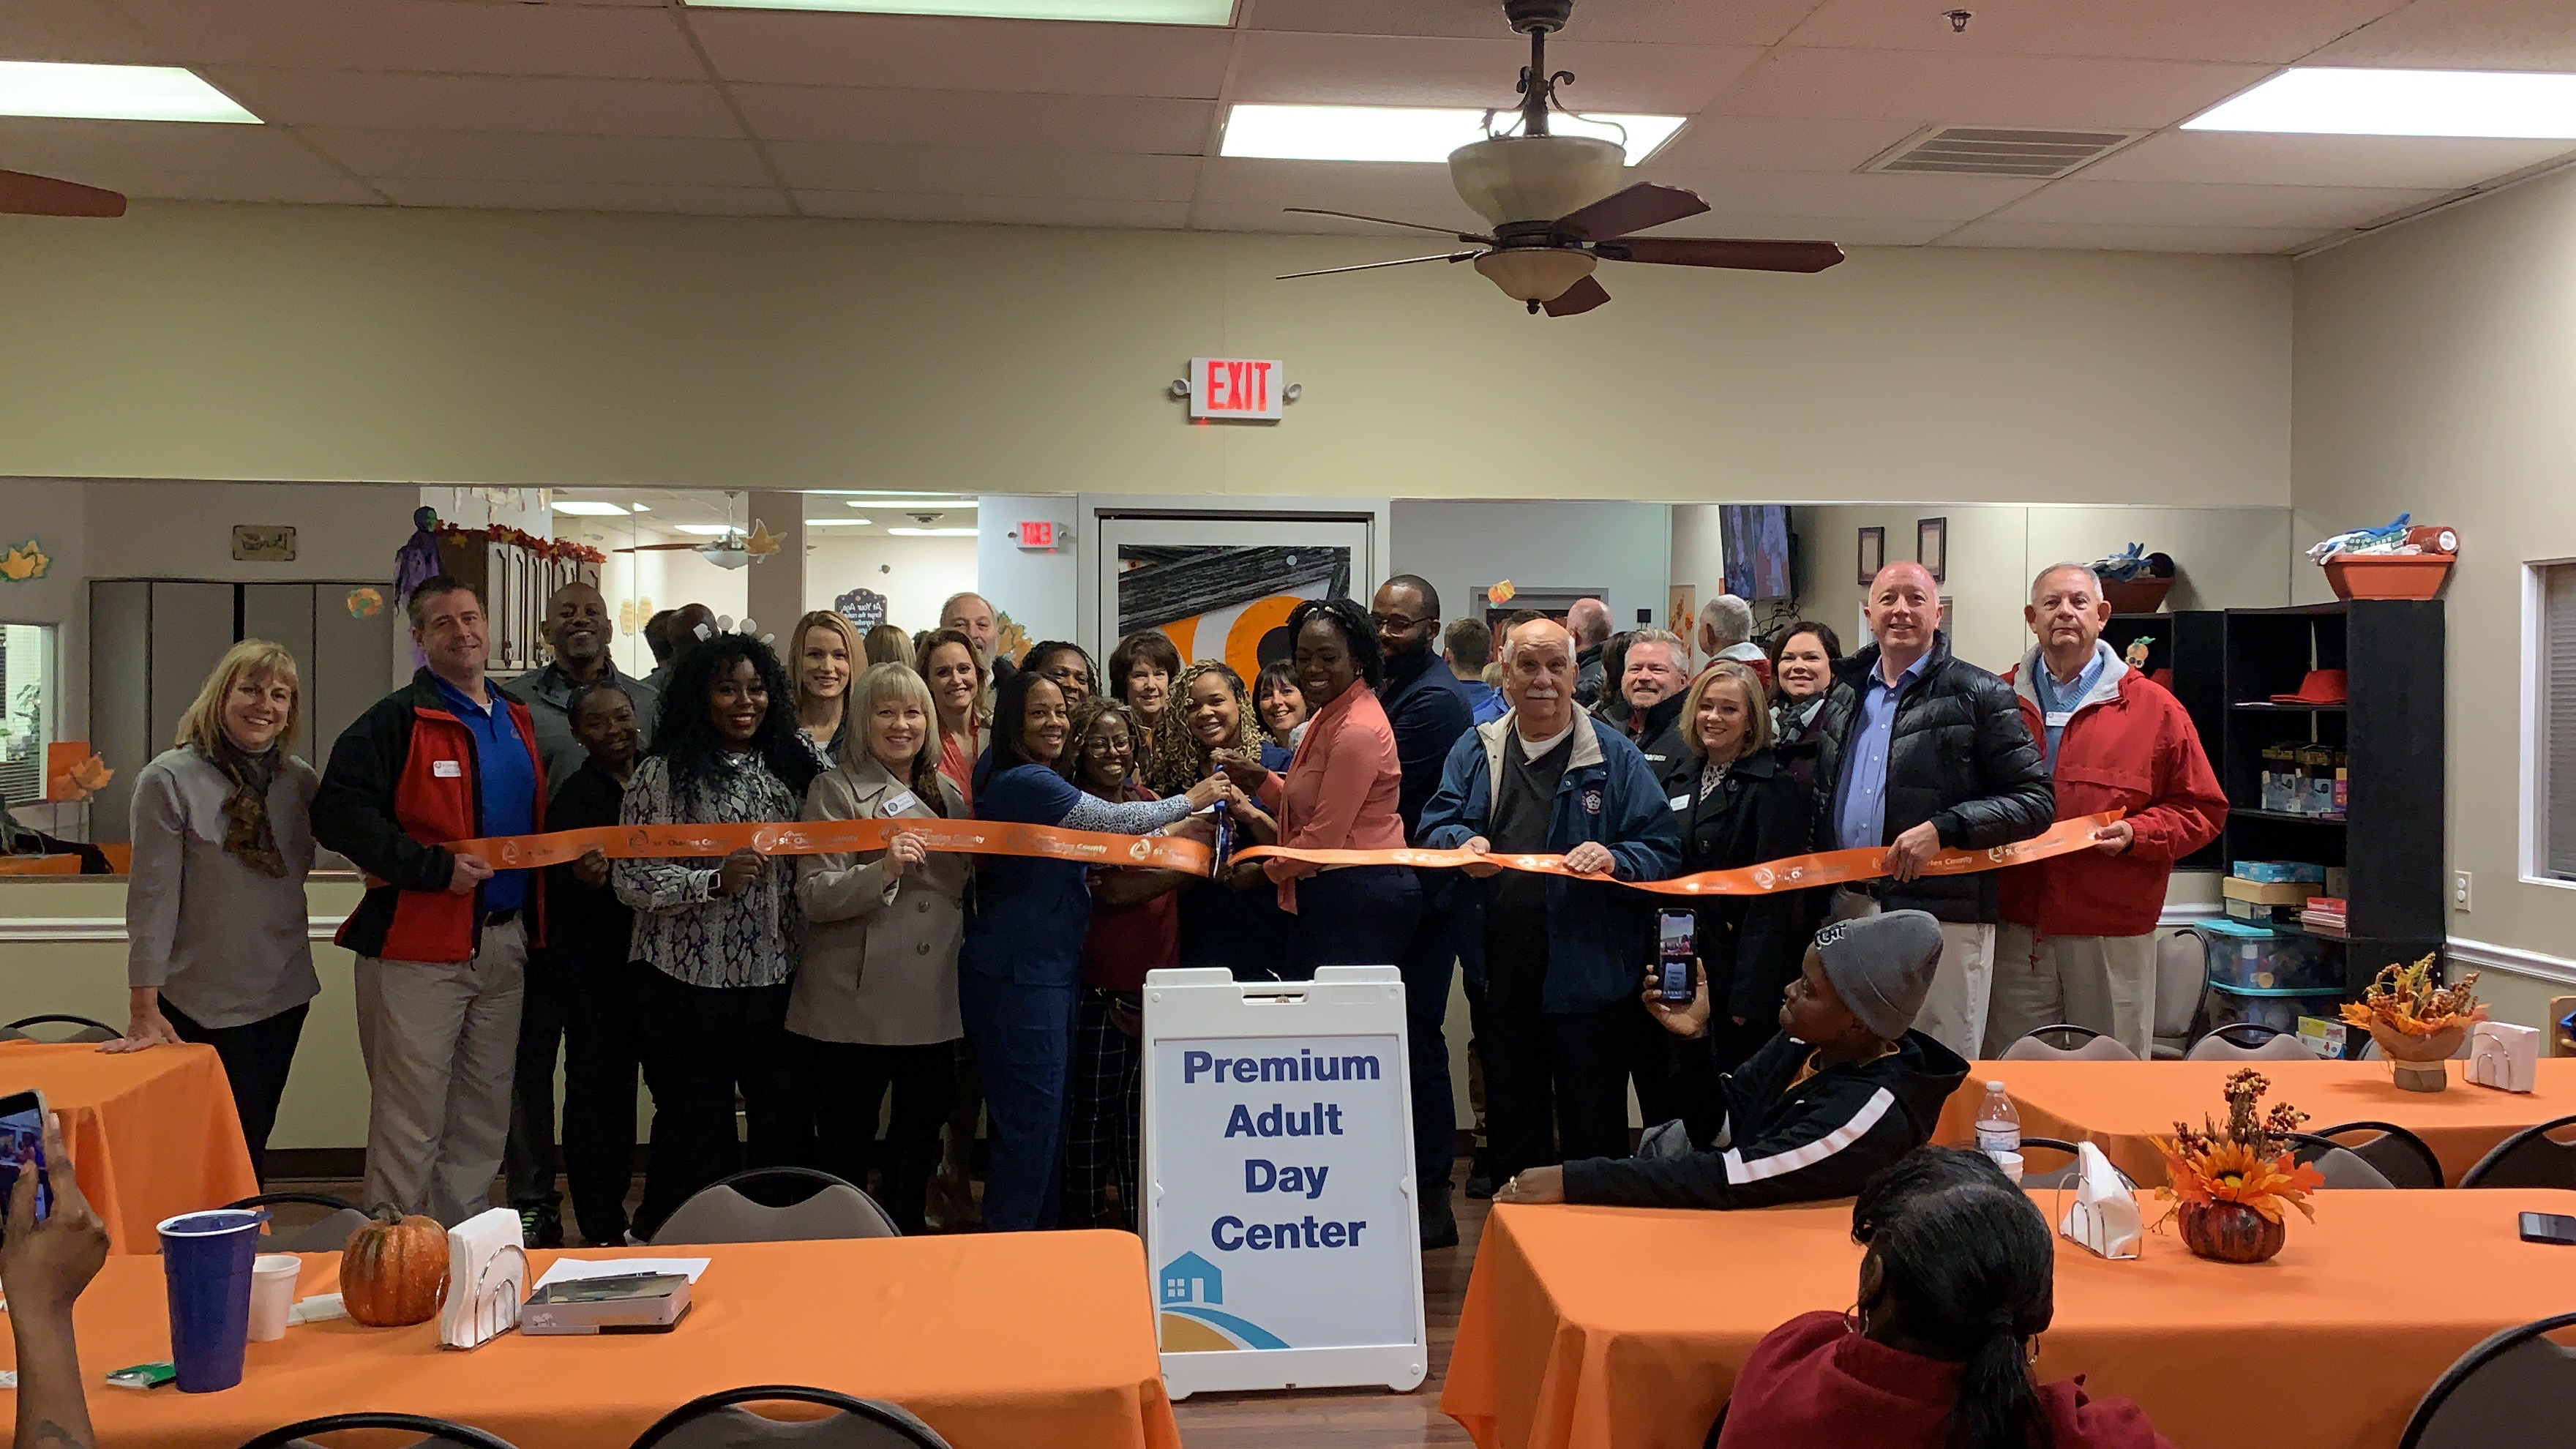 Premium Adult Day Center Celebrates  Grand Opening with Ribbon Cutting